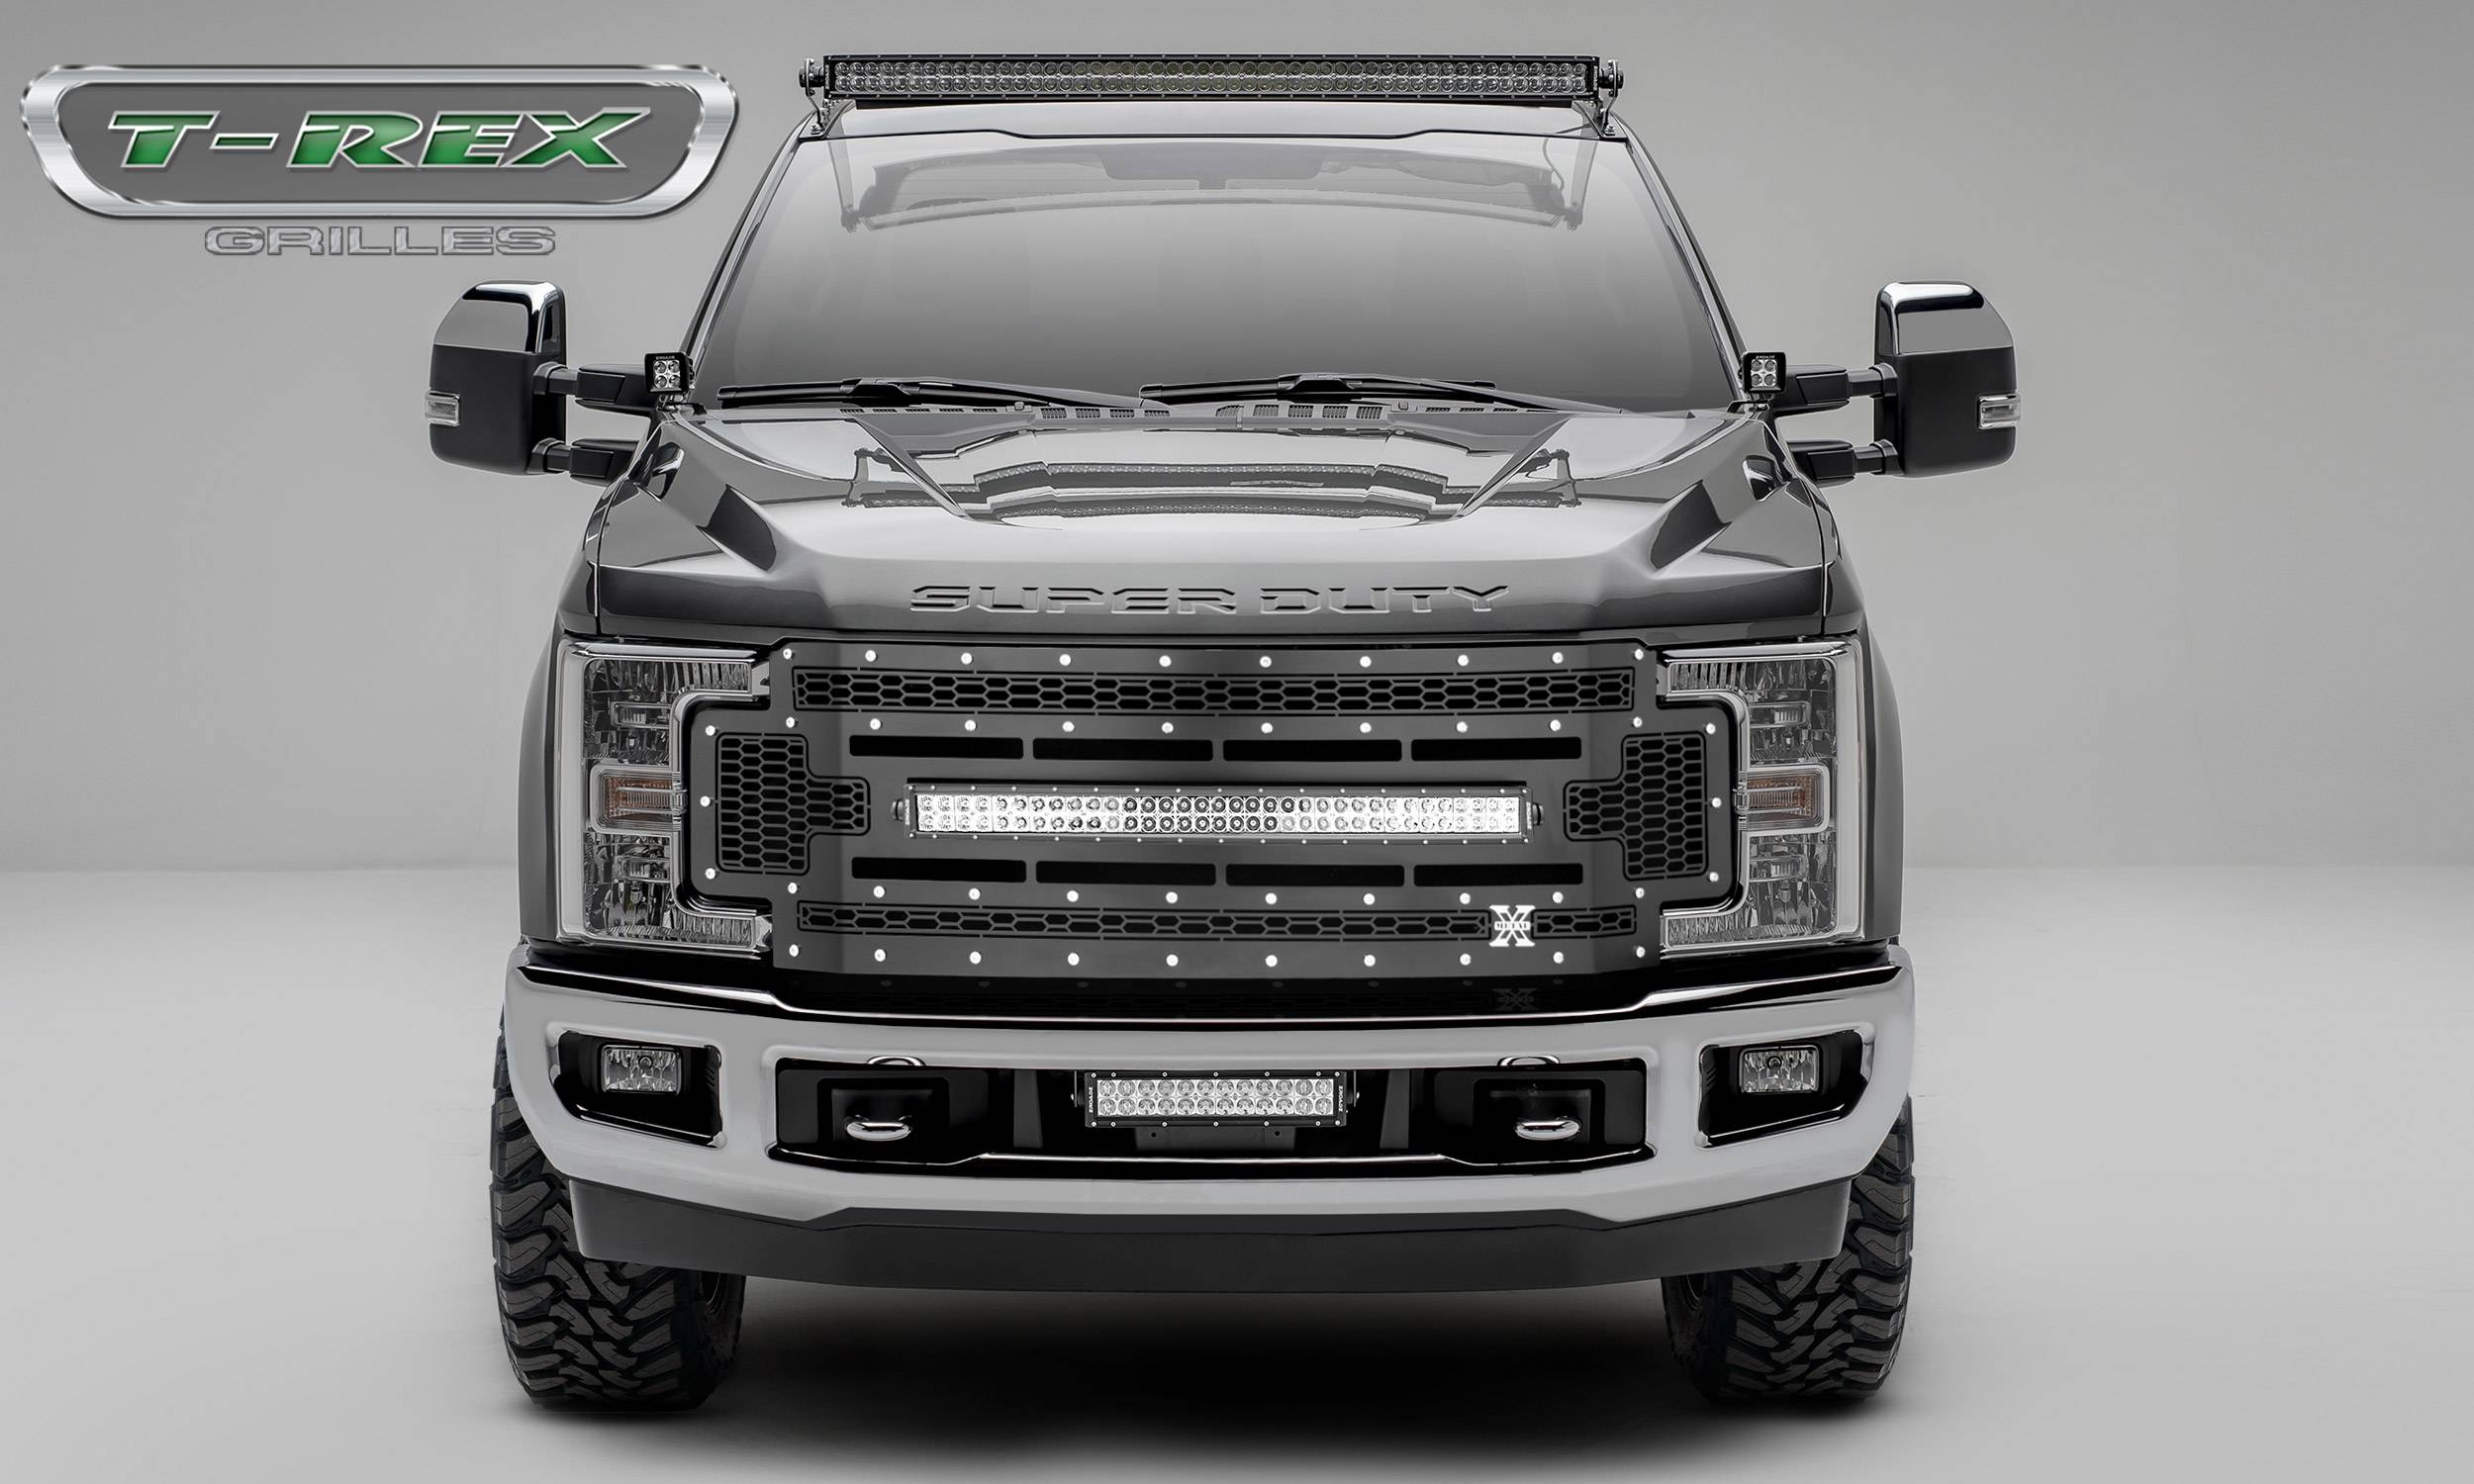 T-REX Grilles - 2017-2019 Ford Super Duty Laser Torch Grille, Black, Mild Steel, 1 Pc, Replacement -#7315471